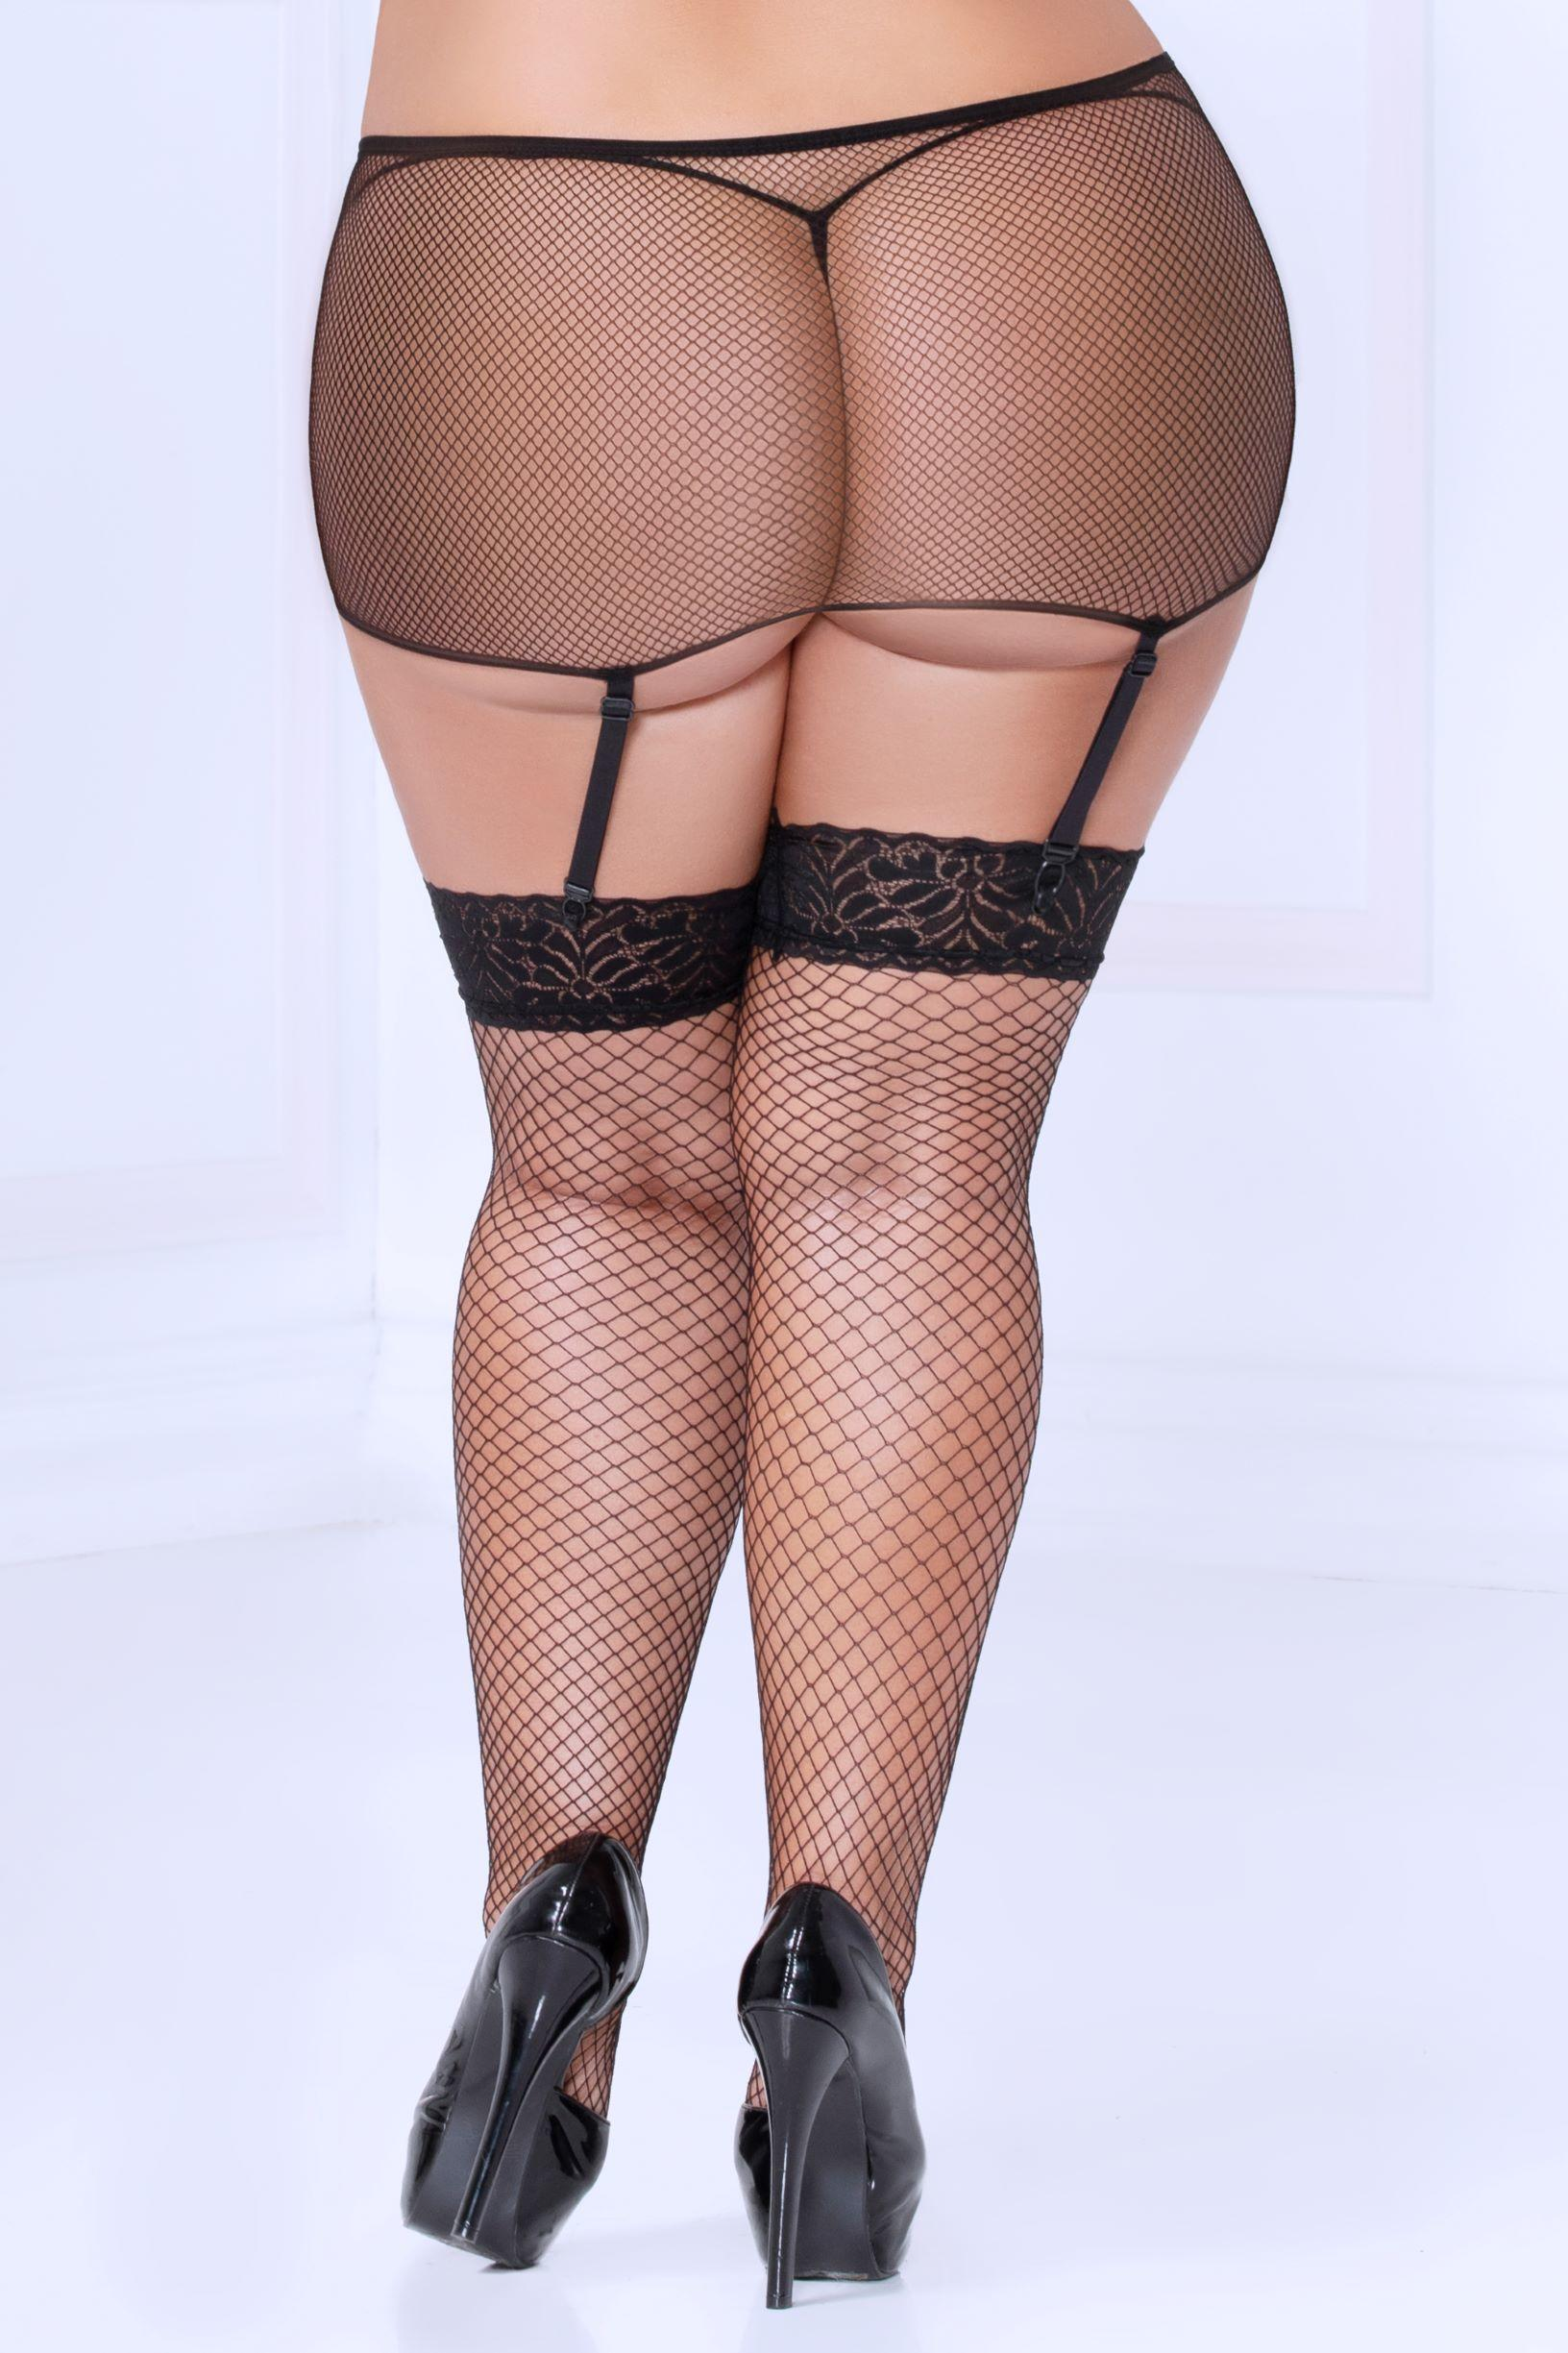 Fishnet Stockings & Garter Belt rear view